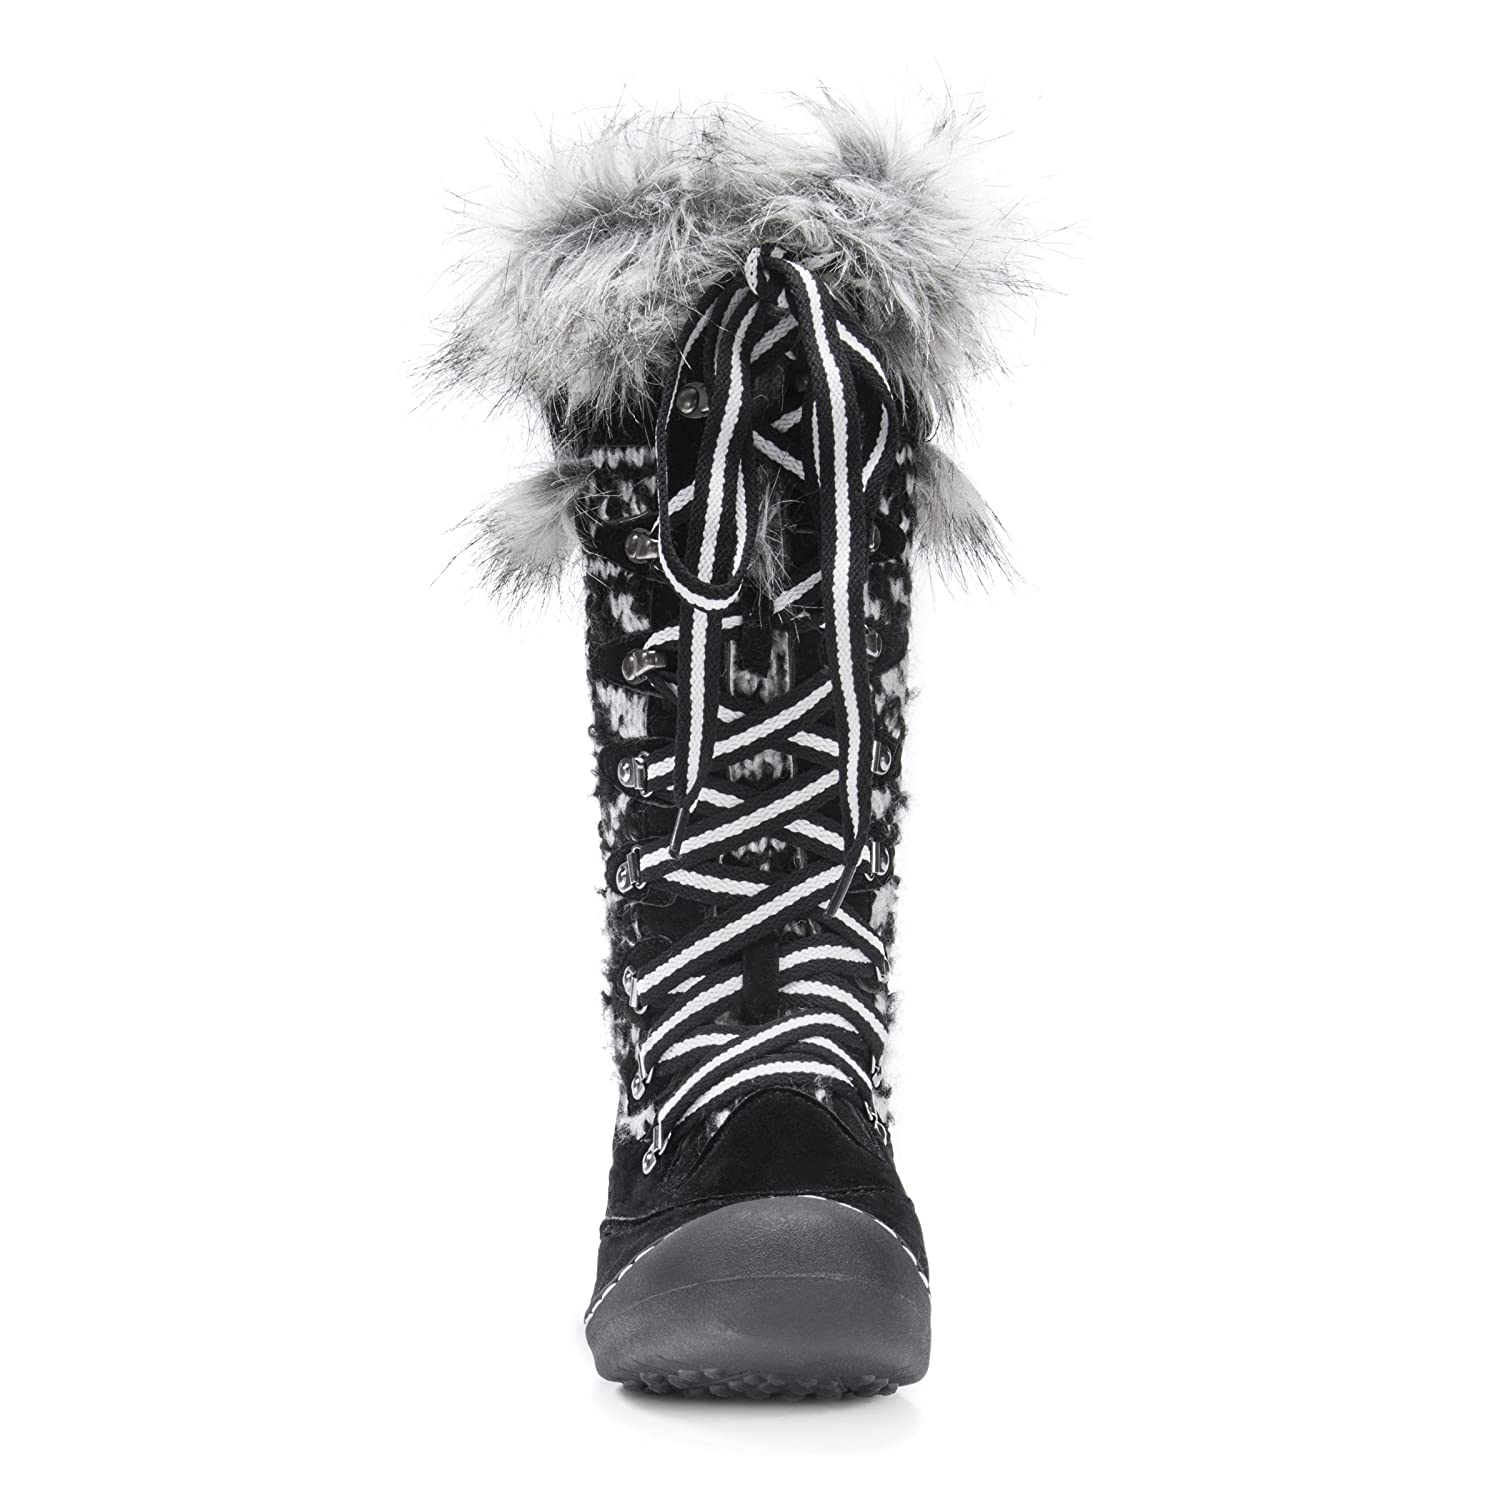 MUK Boot LUKS Women's Gwen Snow Boot MUK B072QRMZ9F 7 M US|White 6c2941